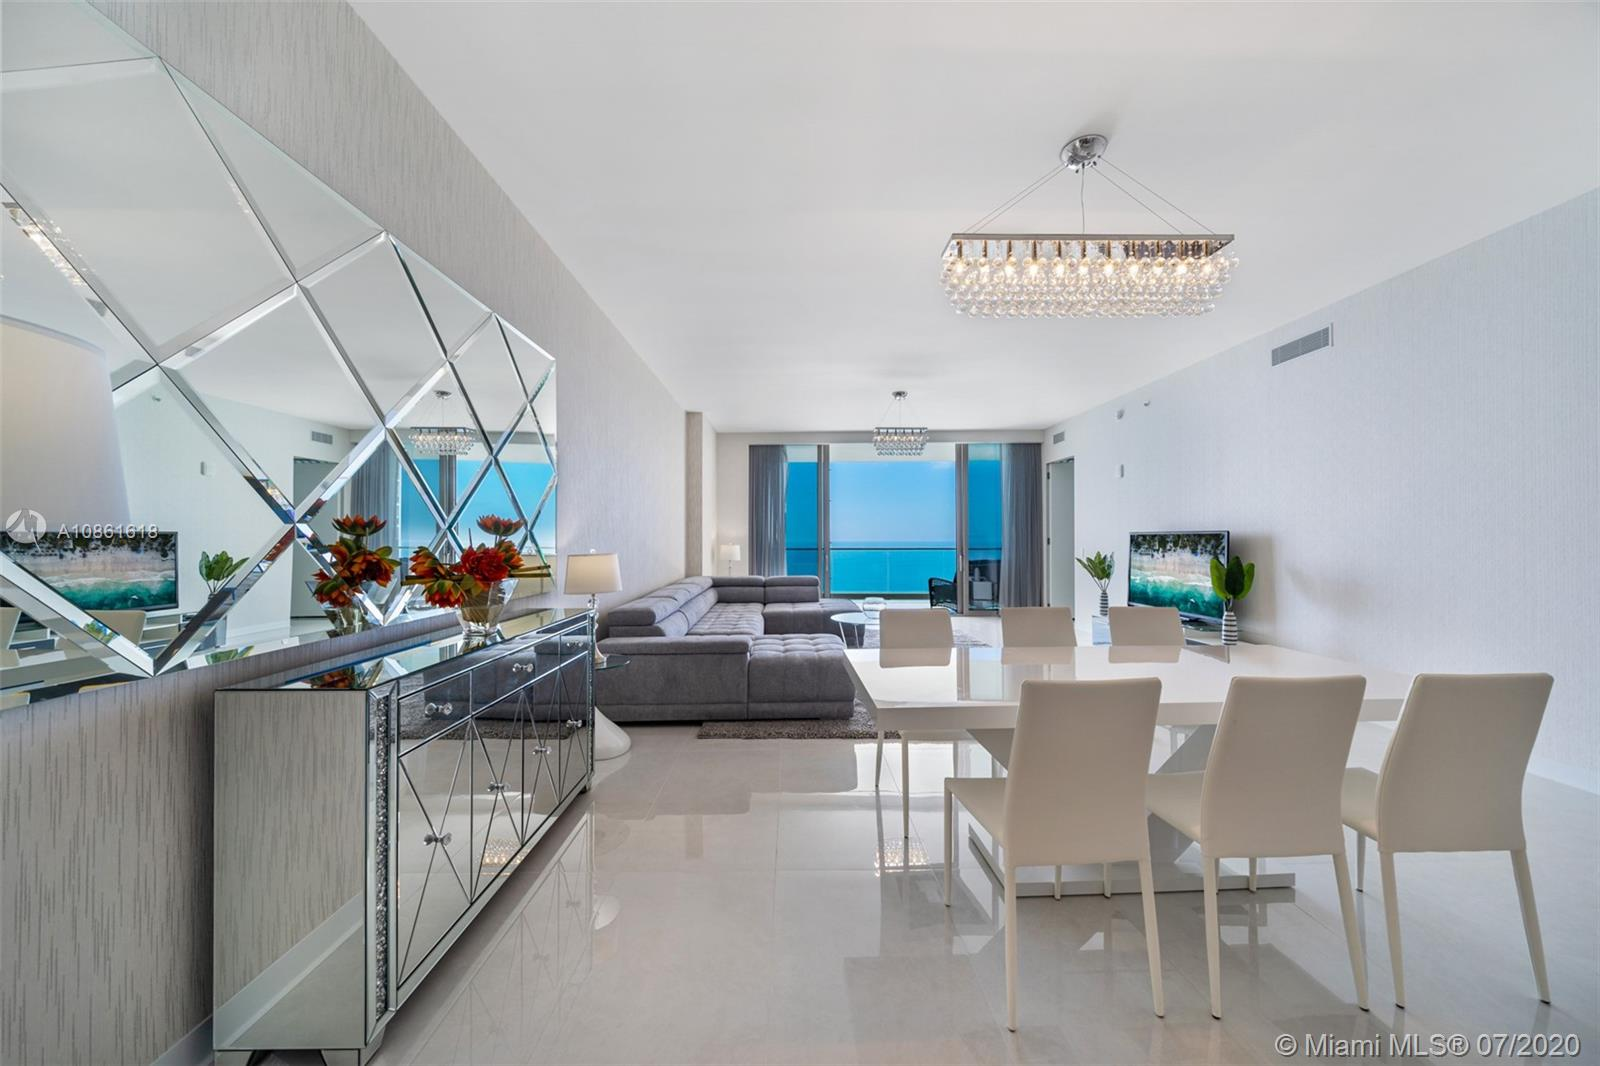 3-Bedrooms + Den / 3.5-Bathrooms (2716sqft interior + 756 balconies) FULLY FINISHED & FURNISHED. TURN KEY. 1 KING + 2 QUEEN BEDS (made in Italy). OCEANFRONT everything: pool, gym, restaurant, theatre, game room, yoga studio, 2-story spa with hair salon, sauna, steam. BREAKFAST CAFE EVERY DAY. This 27th floor flow-through, east to west, sunrise to sunset, condo has a Den (make it your office or library?), midnight bar in Master, fully built out closets, chandeliers, curtains, porcelain tile floors, BBQ on Balcony, NEST Thermostats, TOTO Toilets, Electric Range on kitchen island with hidden ventilation system, Washer+Dryer.  Tenant occupied until Aug 7, 2021, SHOWINGS allowed once a week either Tuesday or Friday any time  between 10:00am-2:00pm. Click on VIRTUAL TOUR for VIDEO.